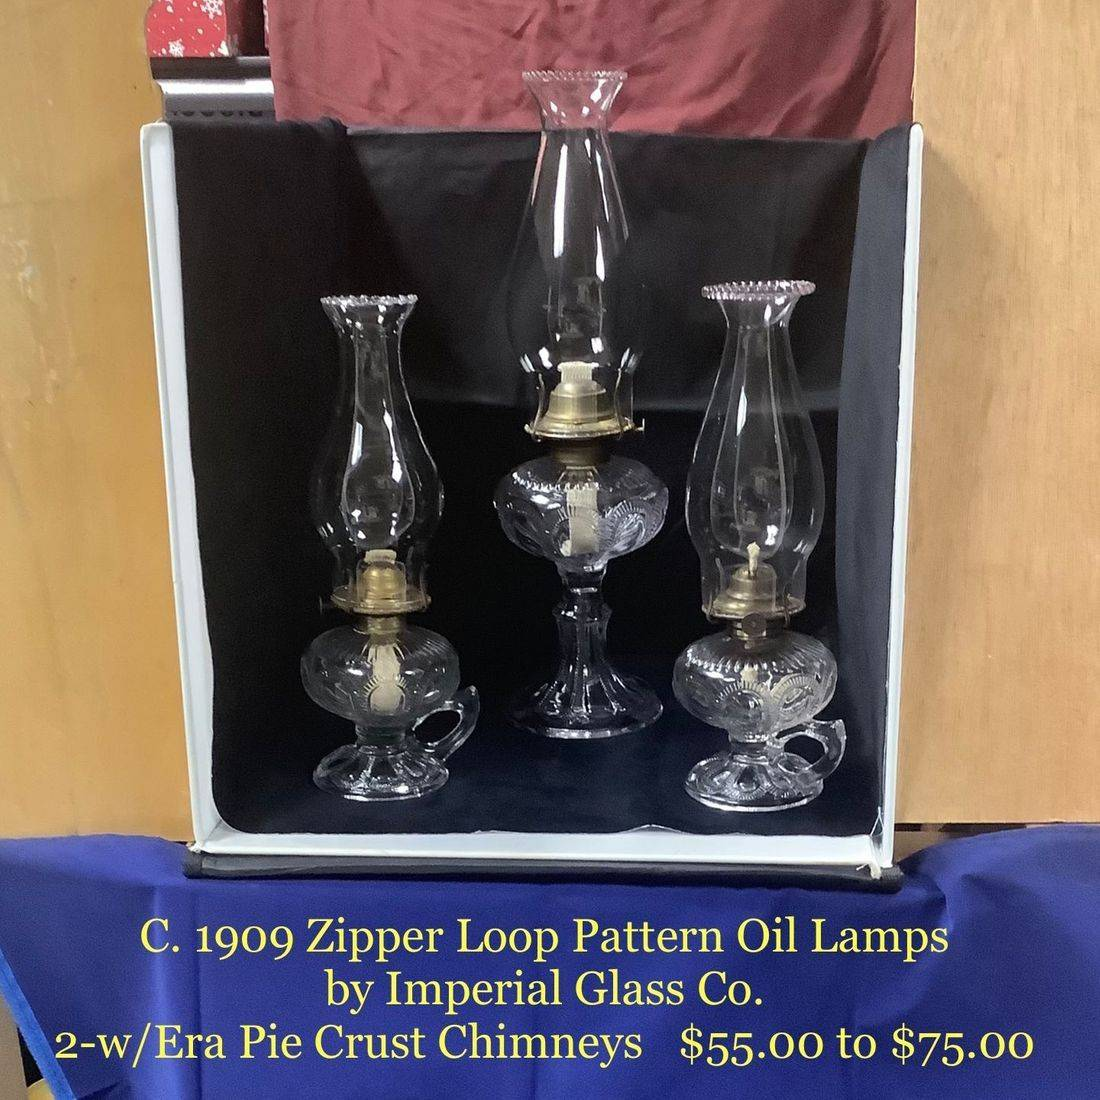 C. 1909 Zipper Loop Pattern Oil Lamps by Imperial Glass Co.   $55.00 to $75.00